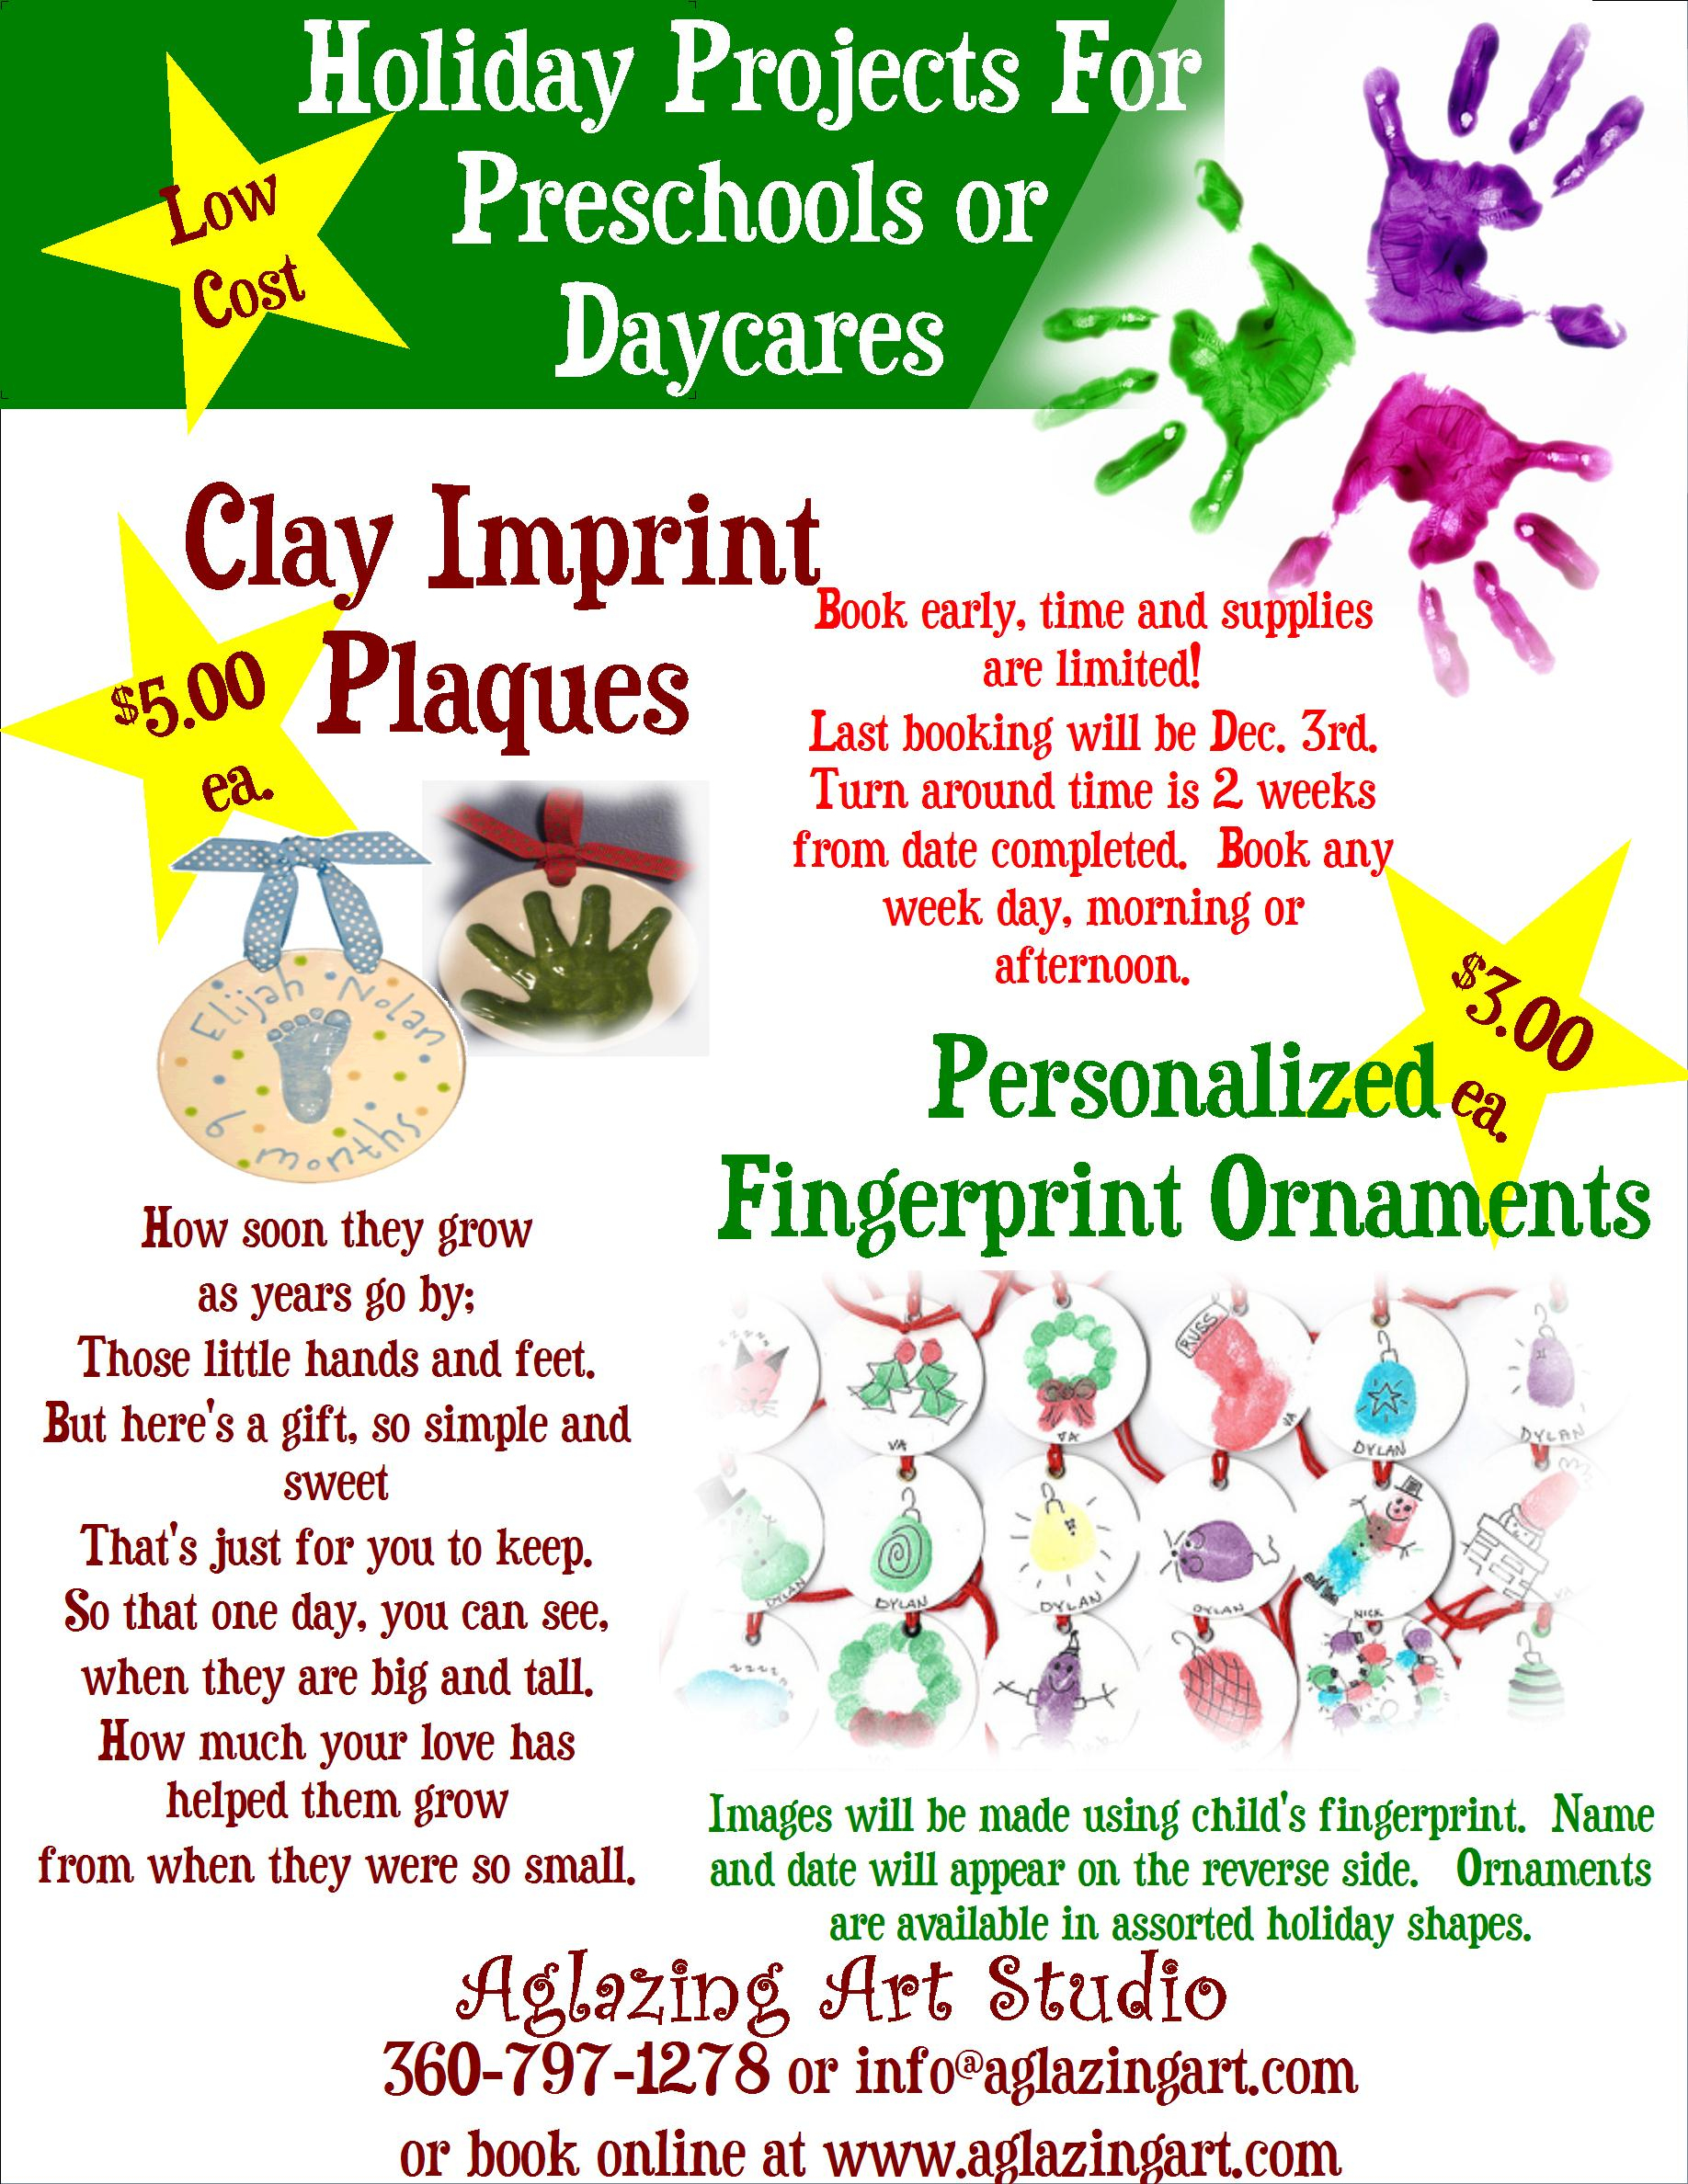 Daycare Flyers Printables #569A367B0C50 - Idealmedia - Free Printable Home Daycare Flyers